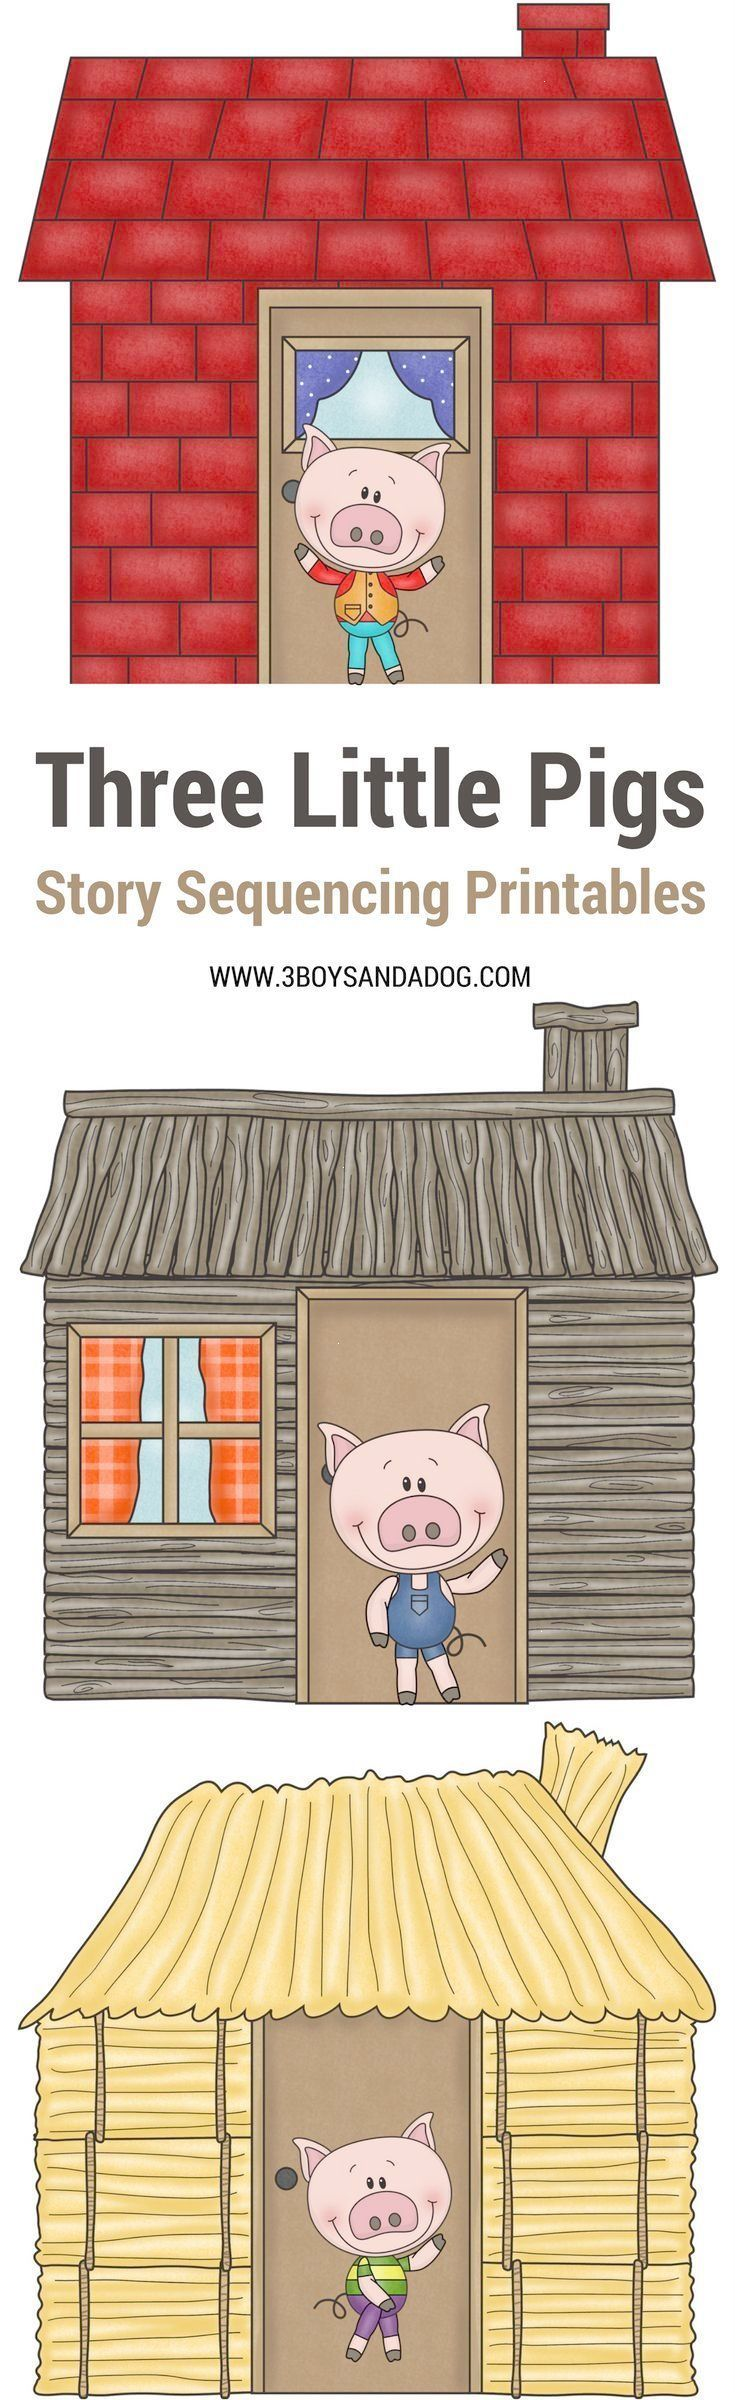 These 3 Little Pigs Pictures To Sequence Are Fun And Educational Paired With The Classic 3 Little Pigs Story Th Three Little Pigs Little Pigs Story Sequencing [ 2400 x 735 Pixel ]